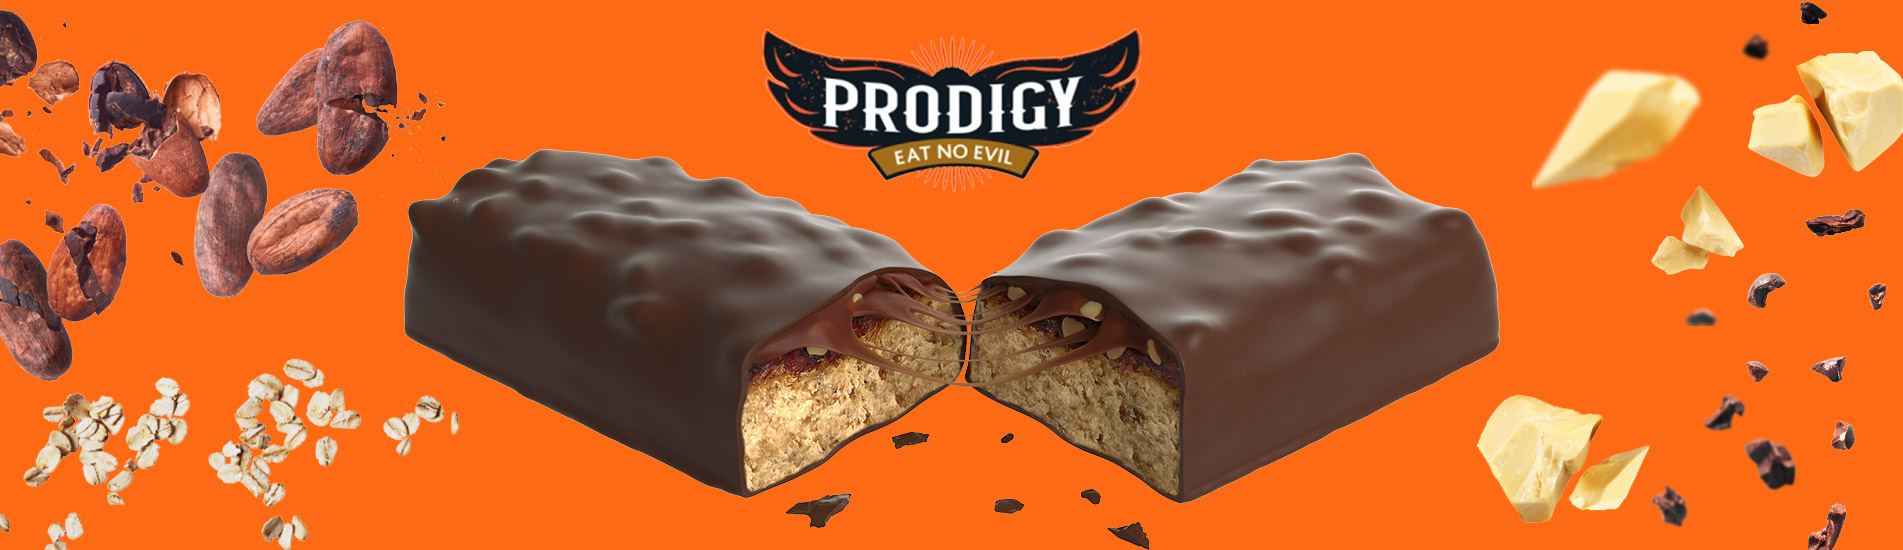 Prodigy – state-of-the-art chocolate bars that aim to disrupt the industry